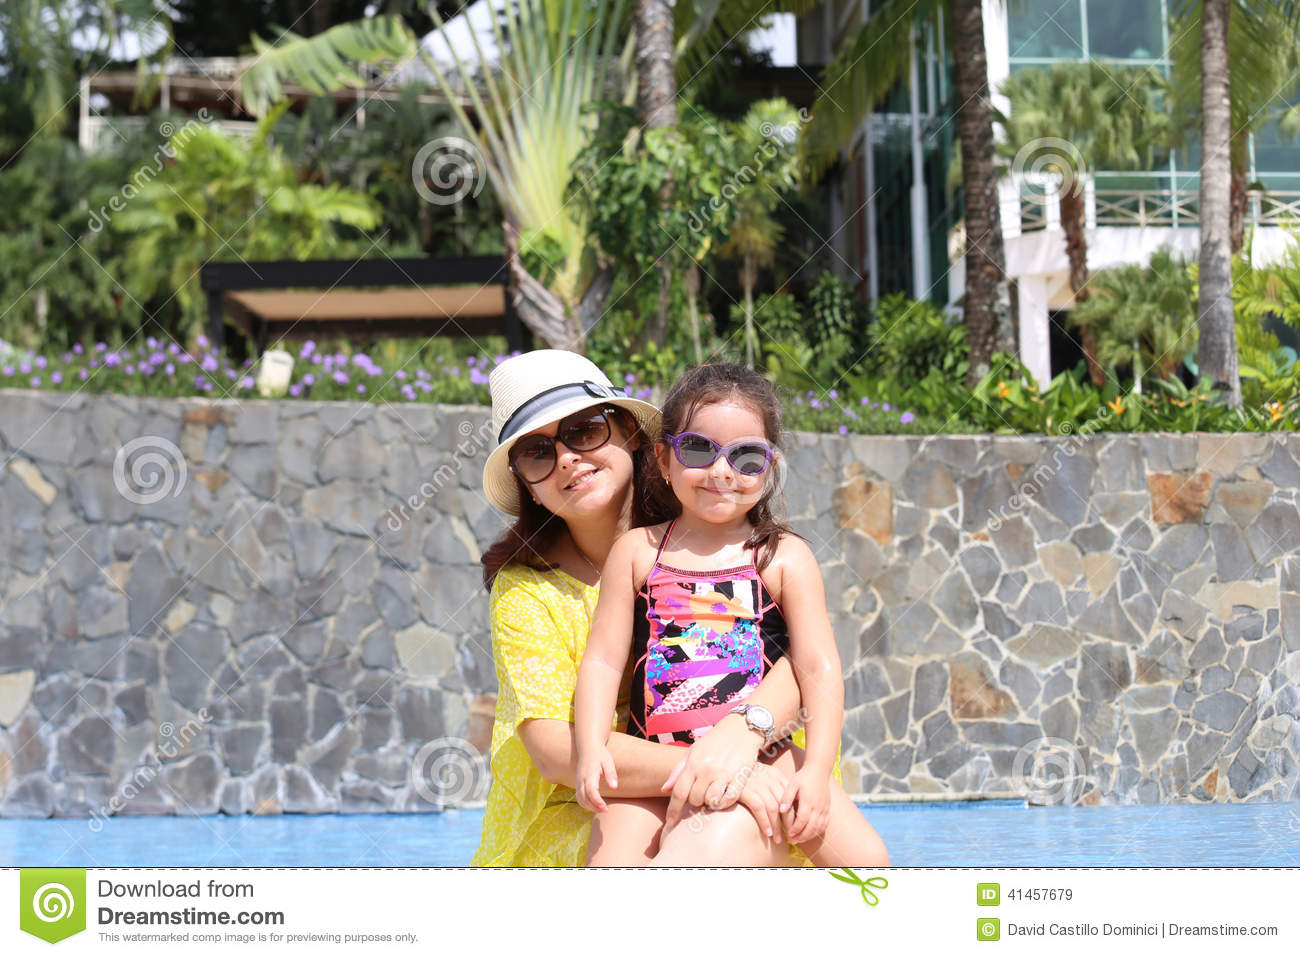 Girl with her mother outside swimming pool enjoying the summerwith their sunglasses